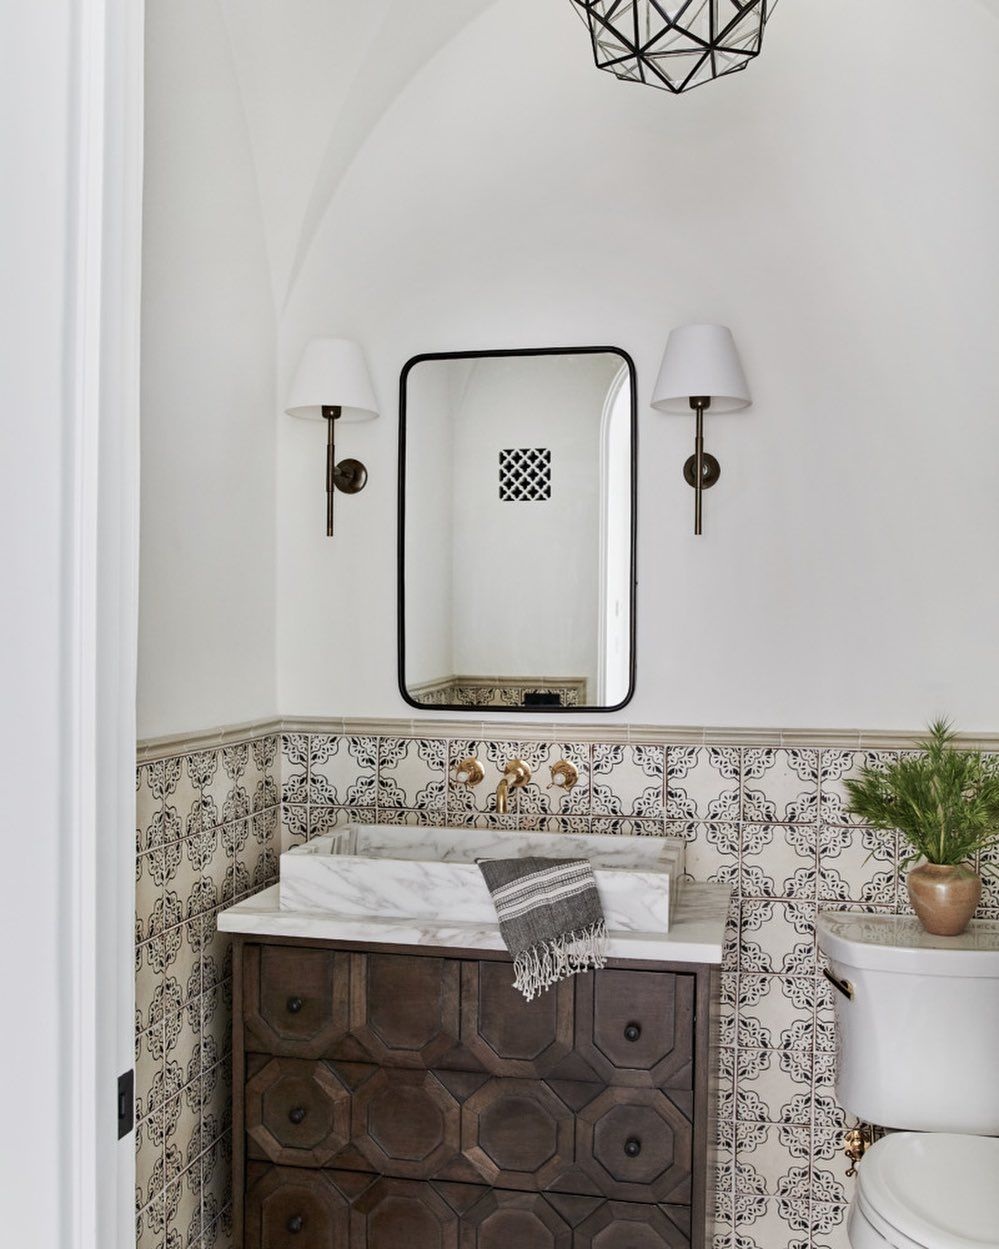 All Sorts Of On Instagram A Daily Reminder To Wash Your Hands On This Selfcaresunday Design Am In 2020 Spanish Style Bathrooms Bathroom Styling Spanish Bathroom